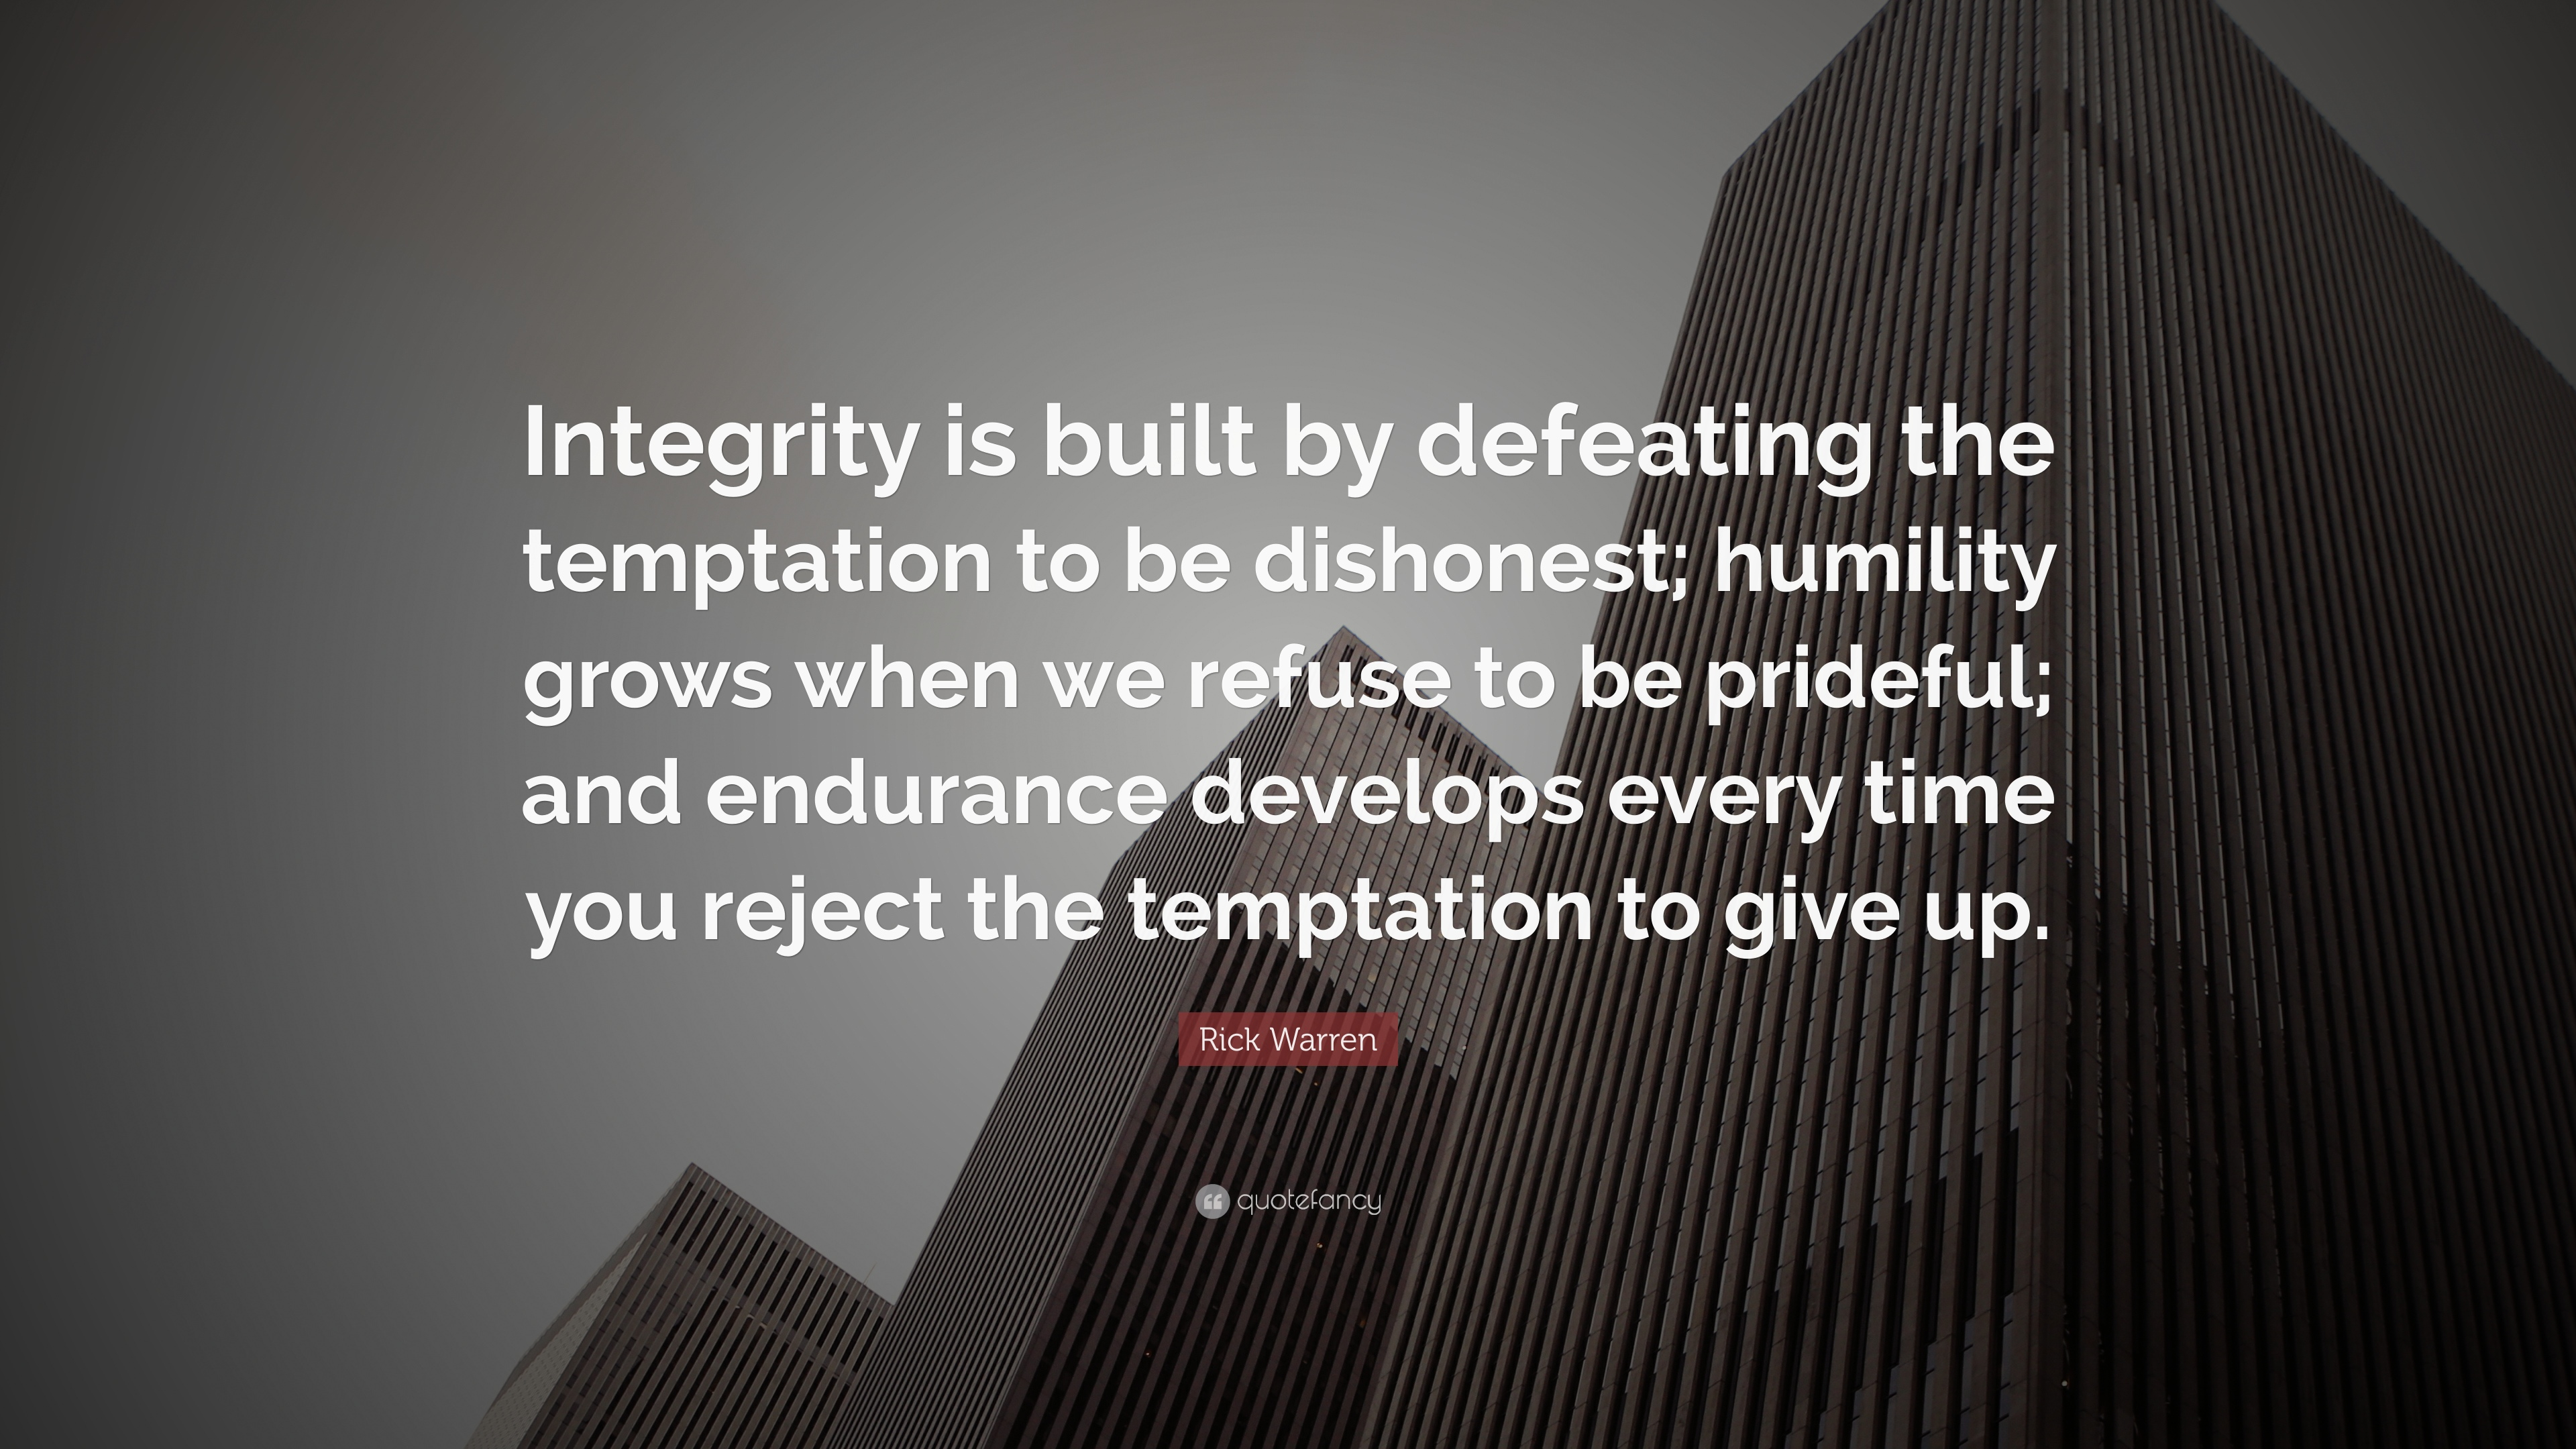 Rick-Warren-Quote-Integrity-is-built-by-defeating-the-temptation